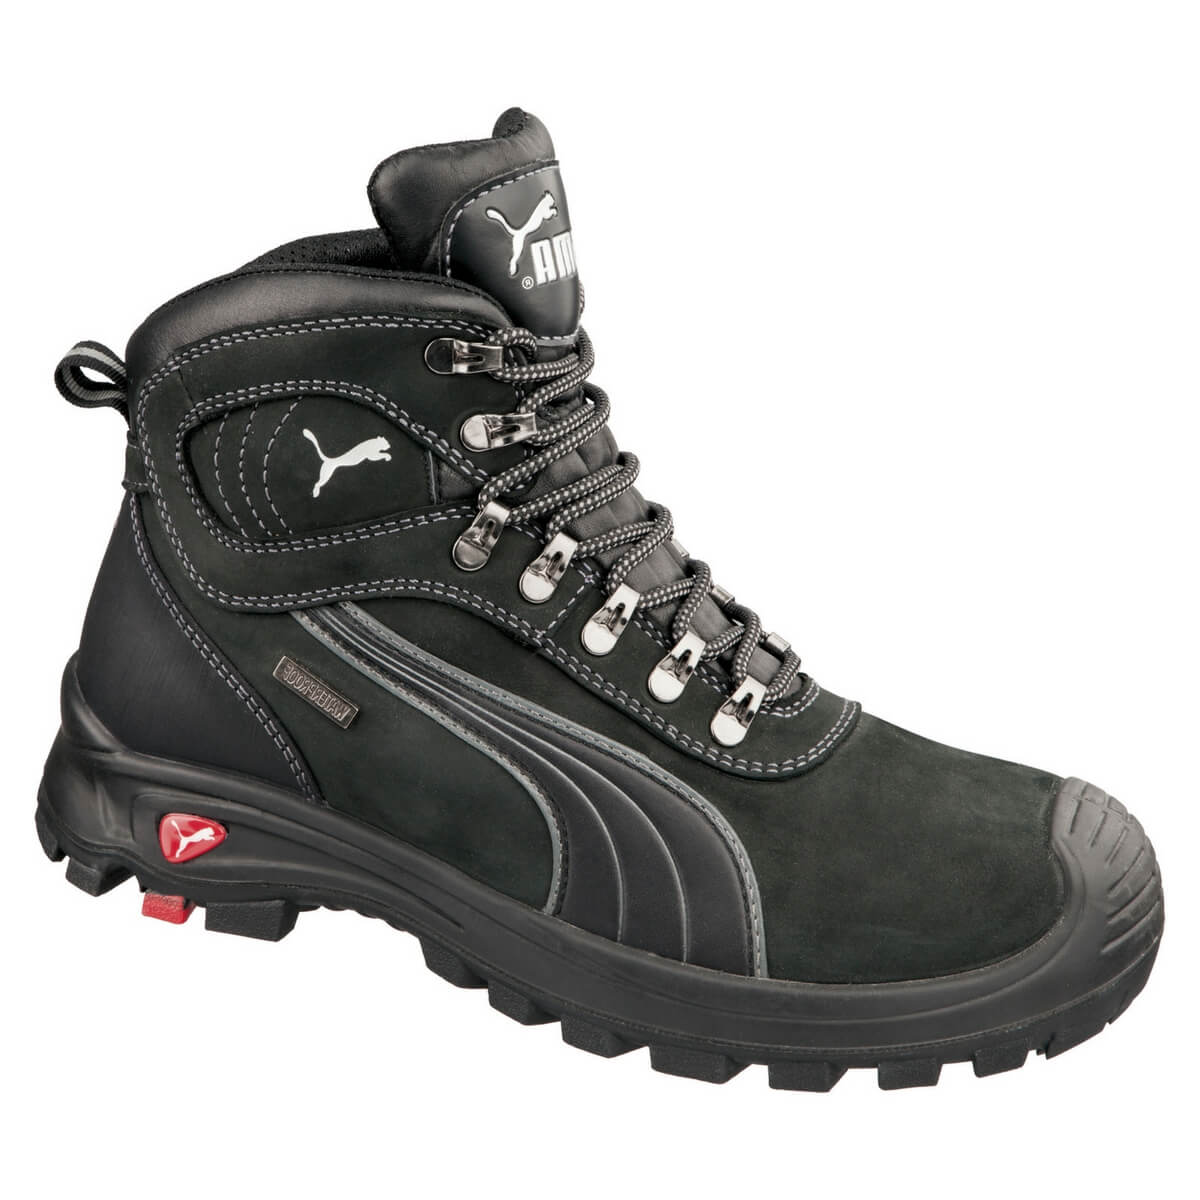 Puma Sierra Nevada Waterproof Safety Boot - Badger Australia 02255b18b